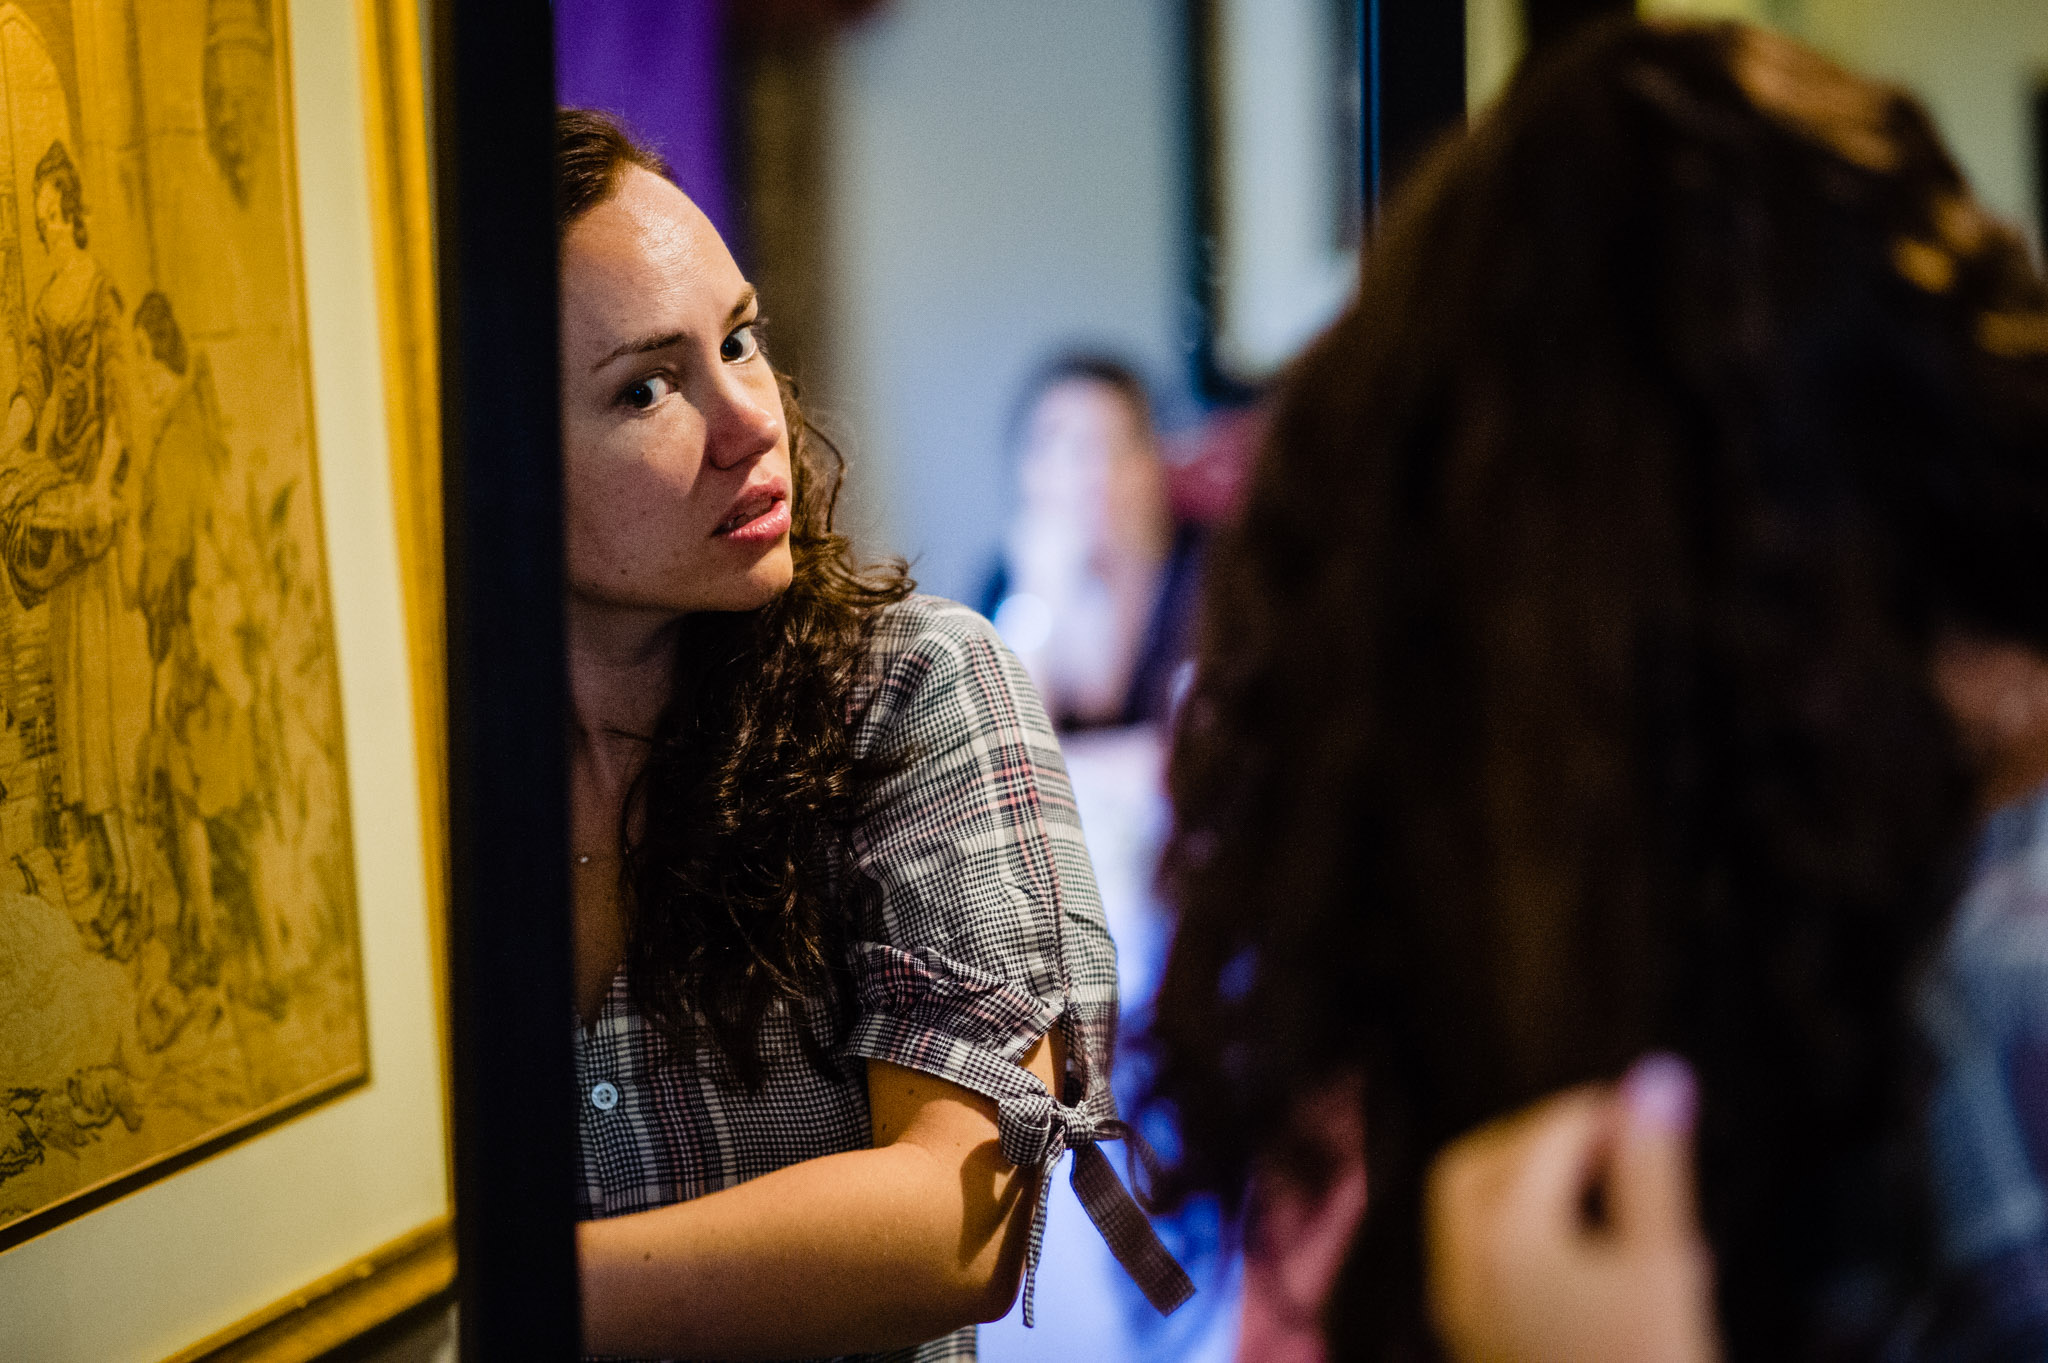 The bride styles her own hair in the mirror